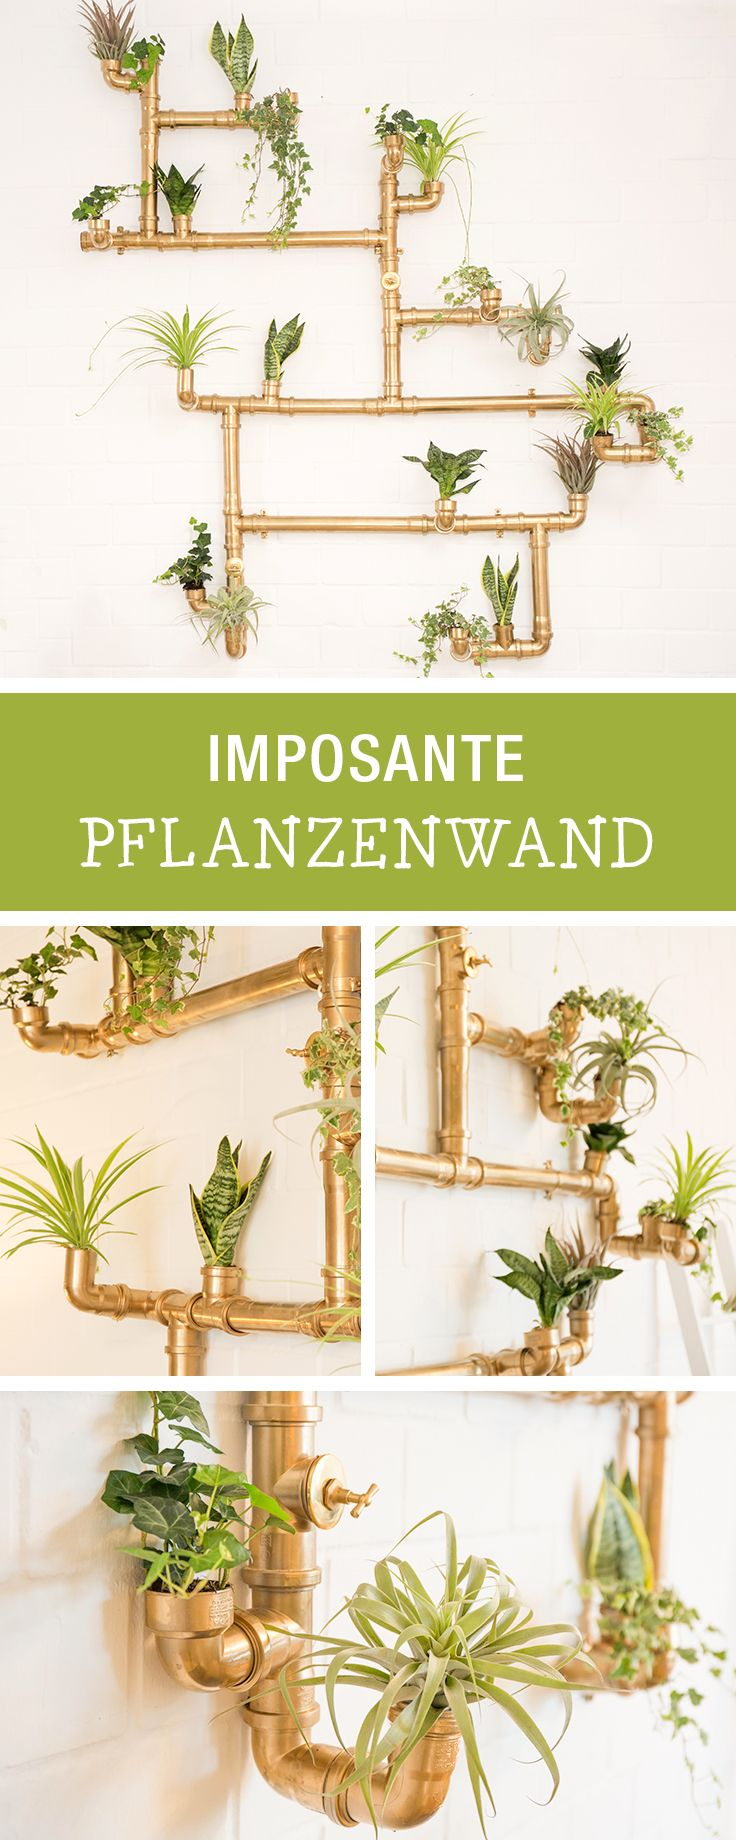 Kostenlose Anleitung für eine große Pflanzenwand aus Rohren im #Kupfer Look, #urbanjungle DIY mit #1000gutegründe / plant diy: copper pipe plant wall for your indoor jungle, #diyinspiration via DaWanda.com // #dawandaandfriends